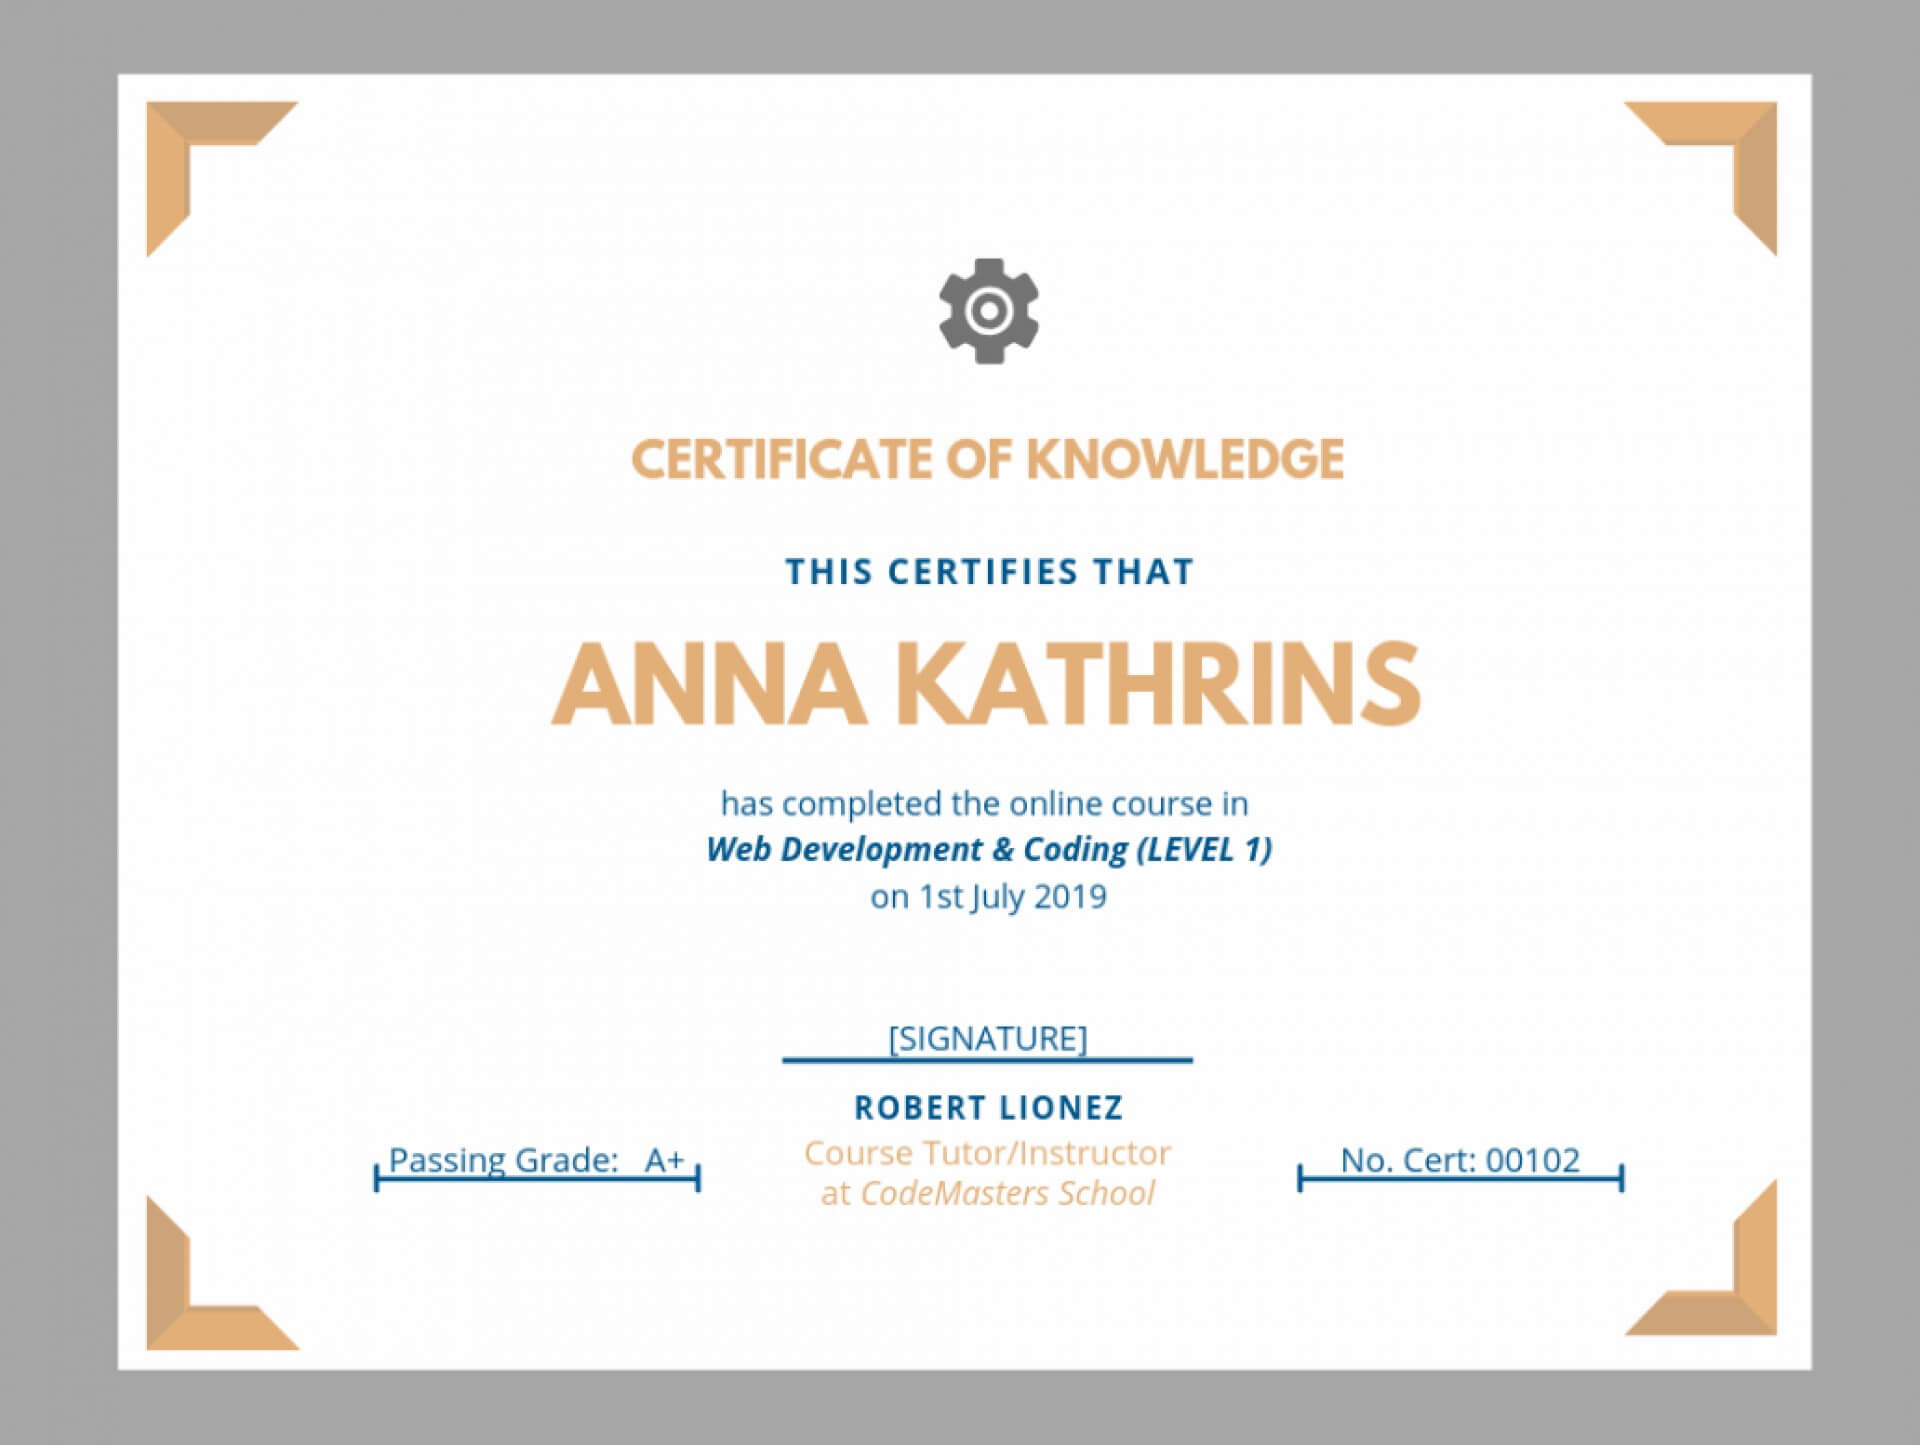 026 Template Ideas Certificates Free Gift Certificate Makes With Regard To This Entitles The Bearer To Template Certificate